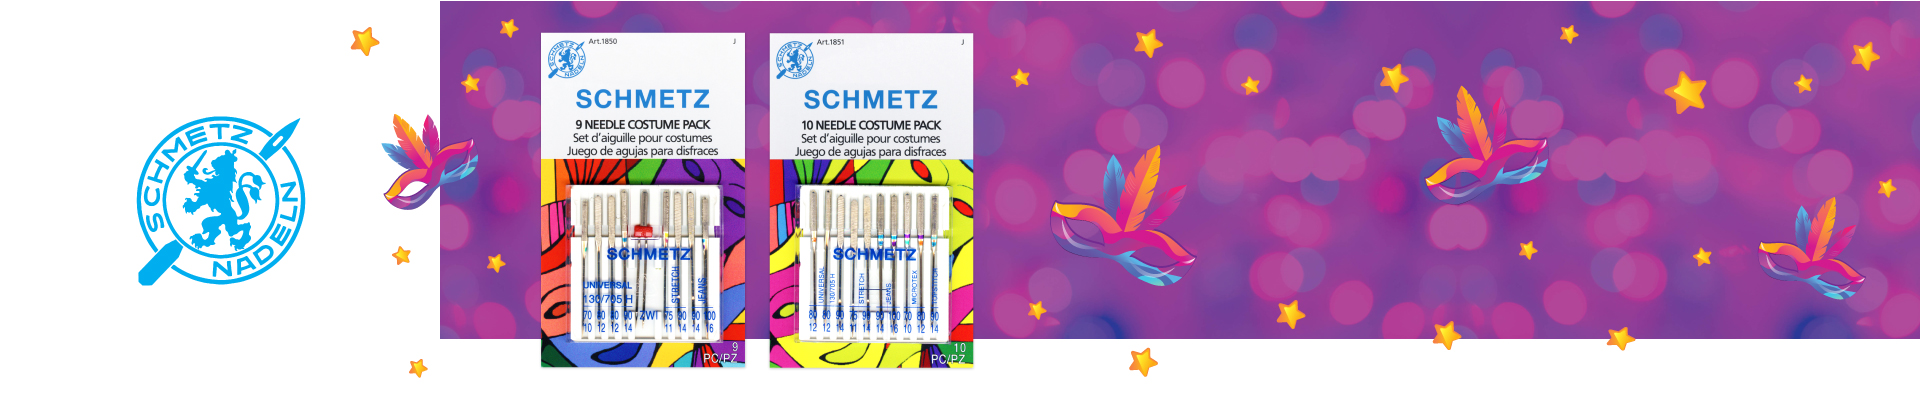 SCHMETZ Needles Costume Pack